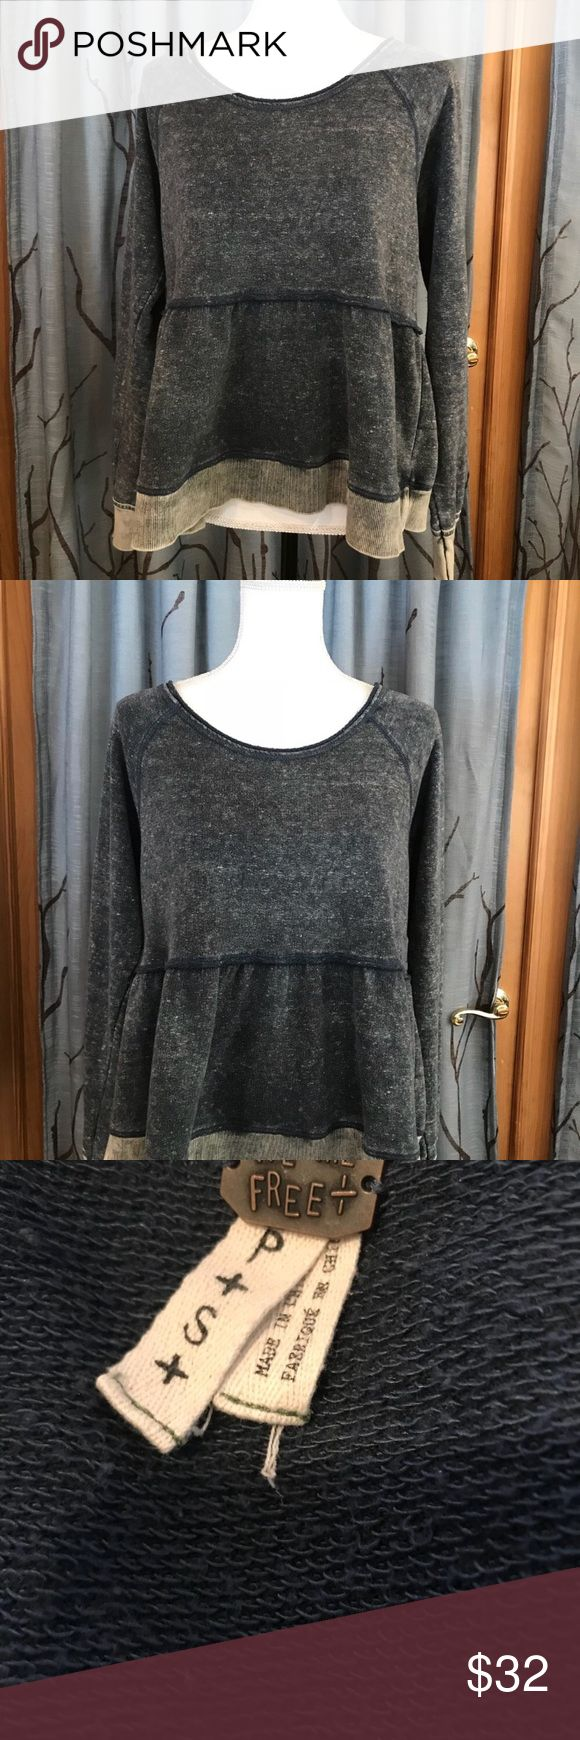 We the Free Free People size small baby doll top. We the Free Free People size small top. Baby doll fit with long sleeves. Soft sweatshirt type material in a marled blue with heather gray cuffs and hem for contrast Free People Tops